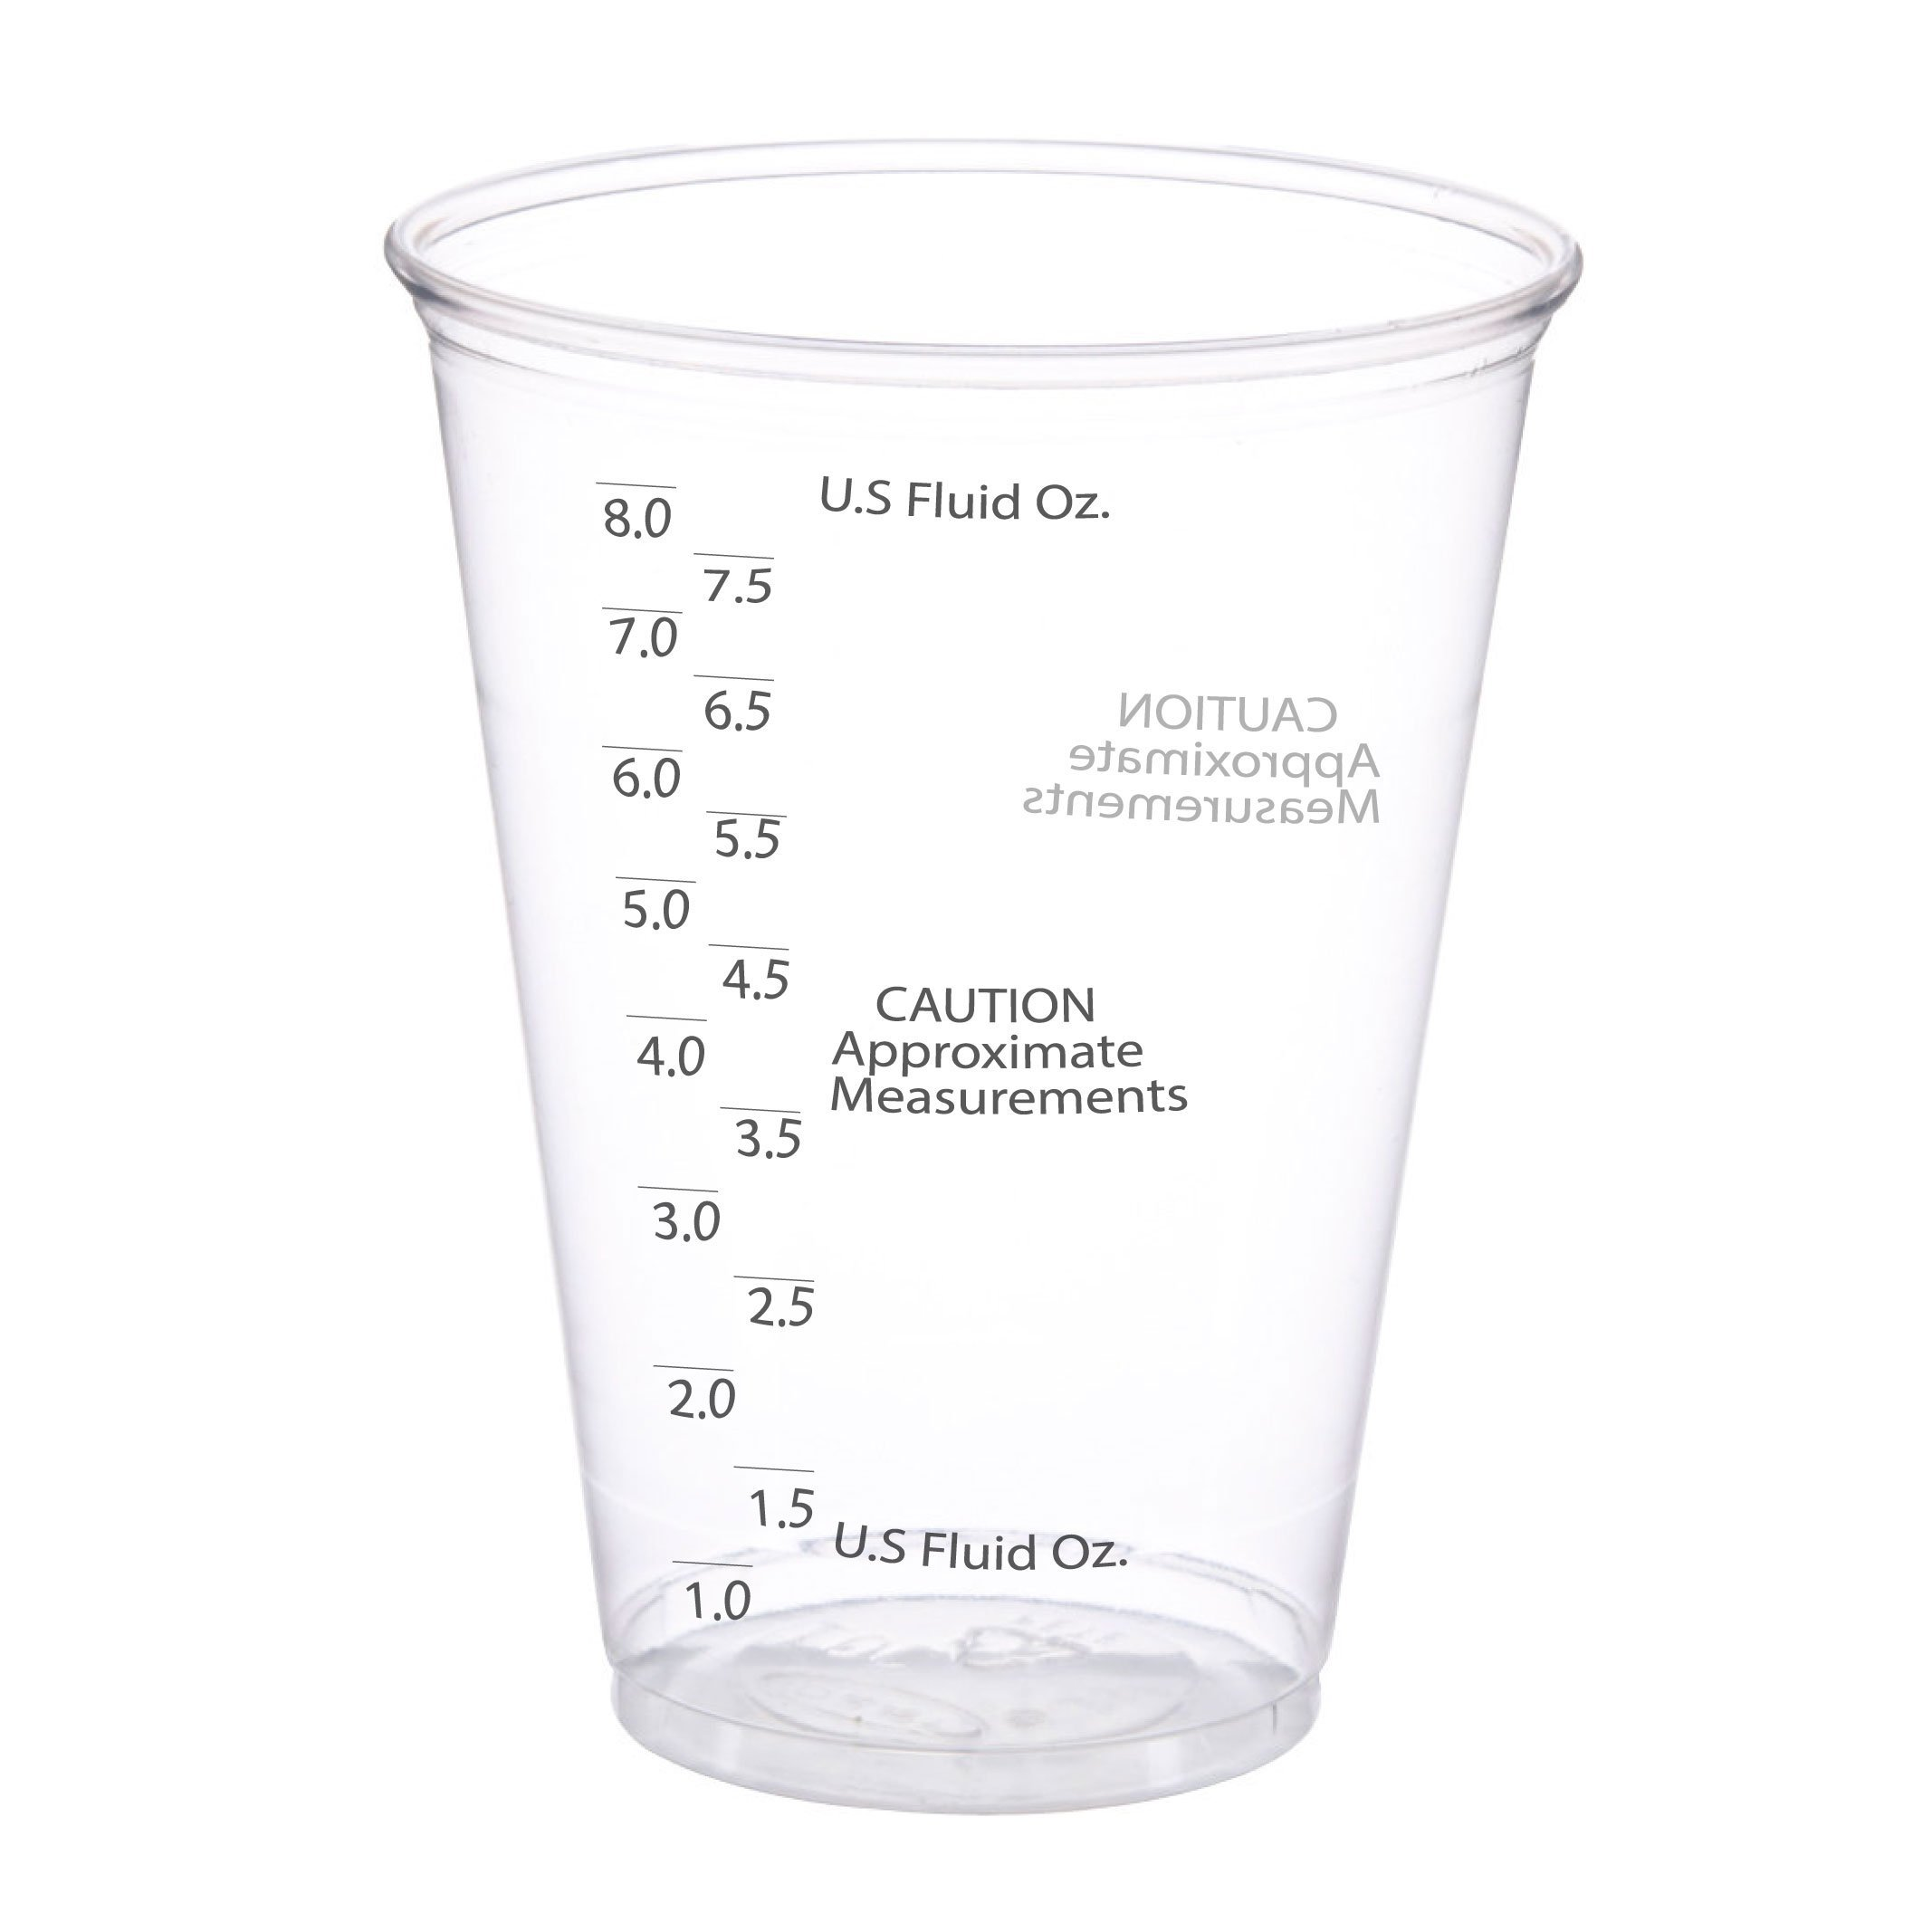 50 Pack | 10 oz. Size | Ultra Clear Plastic Measuring Cups | Best Value | Graduated Mixing | for Resin, Epoxy, Stain, Pour Art, Paint | Disposable Pack